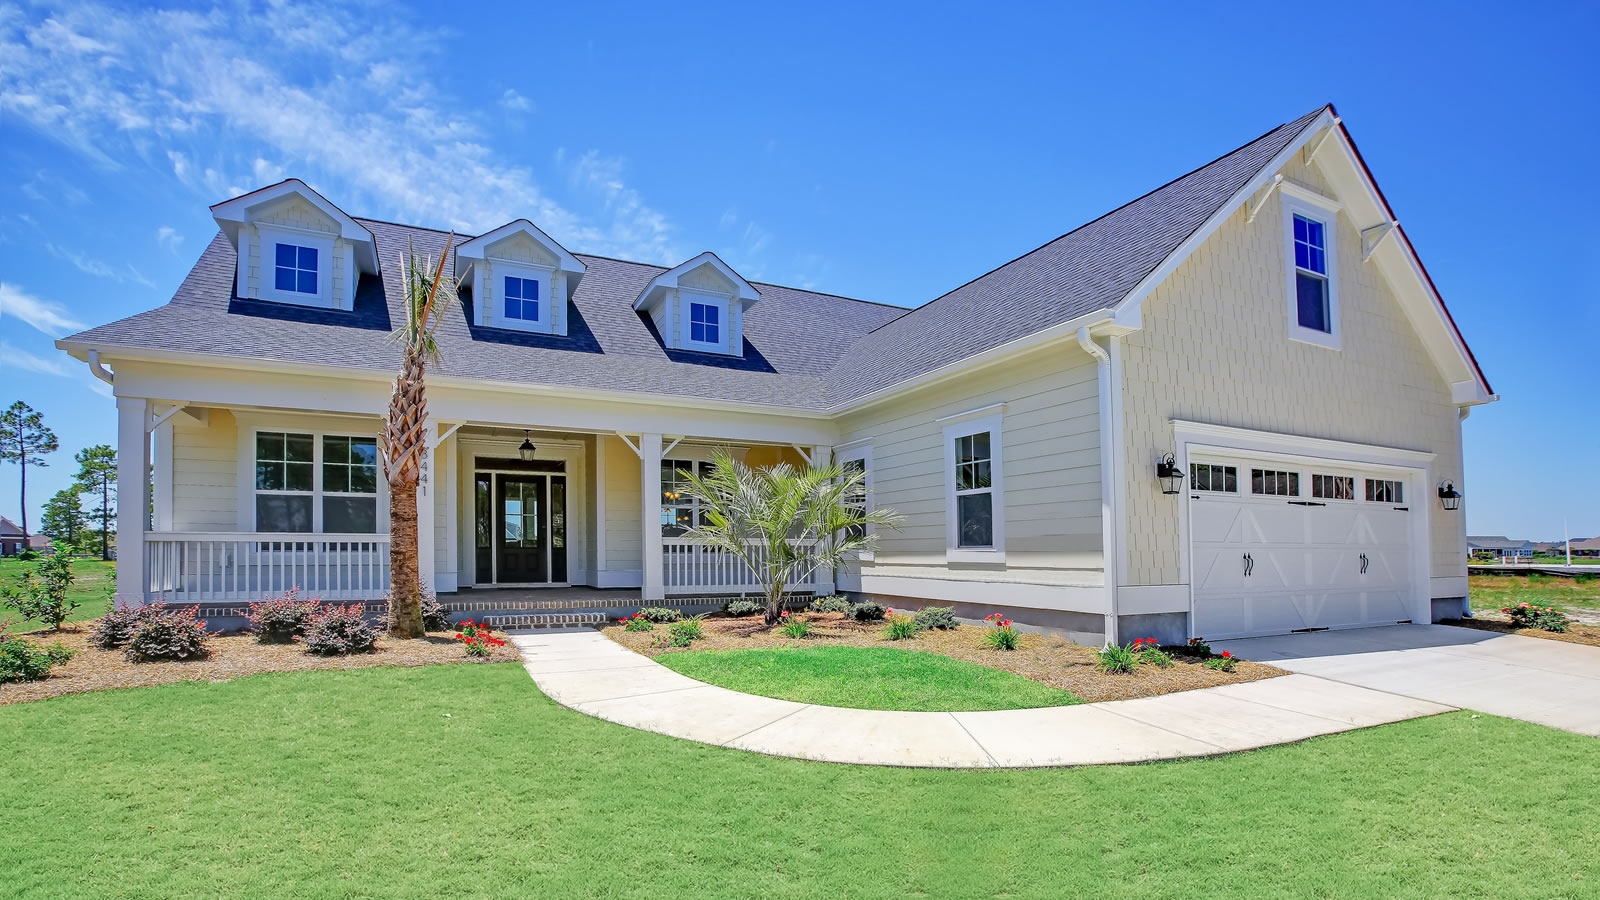 Legacy homes by bill clark compass pointe for Legacy house